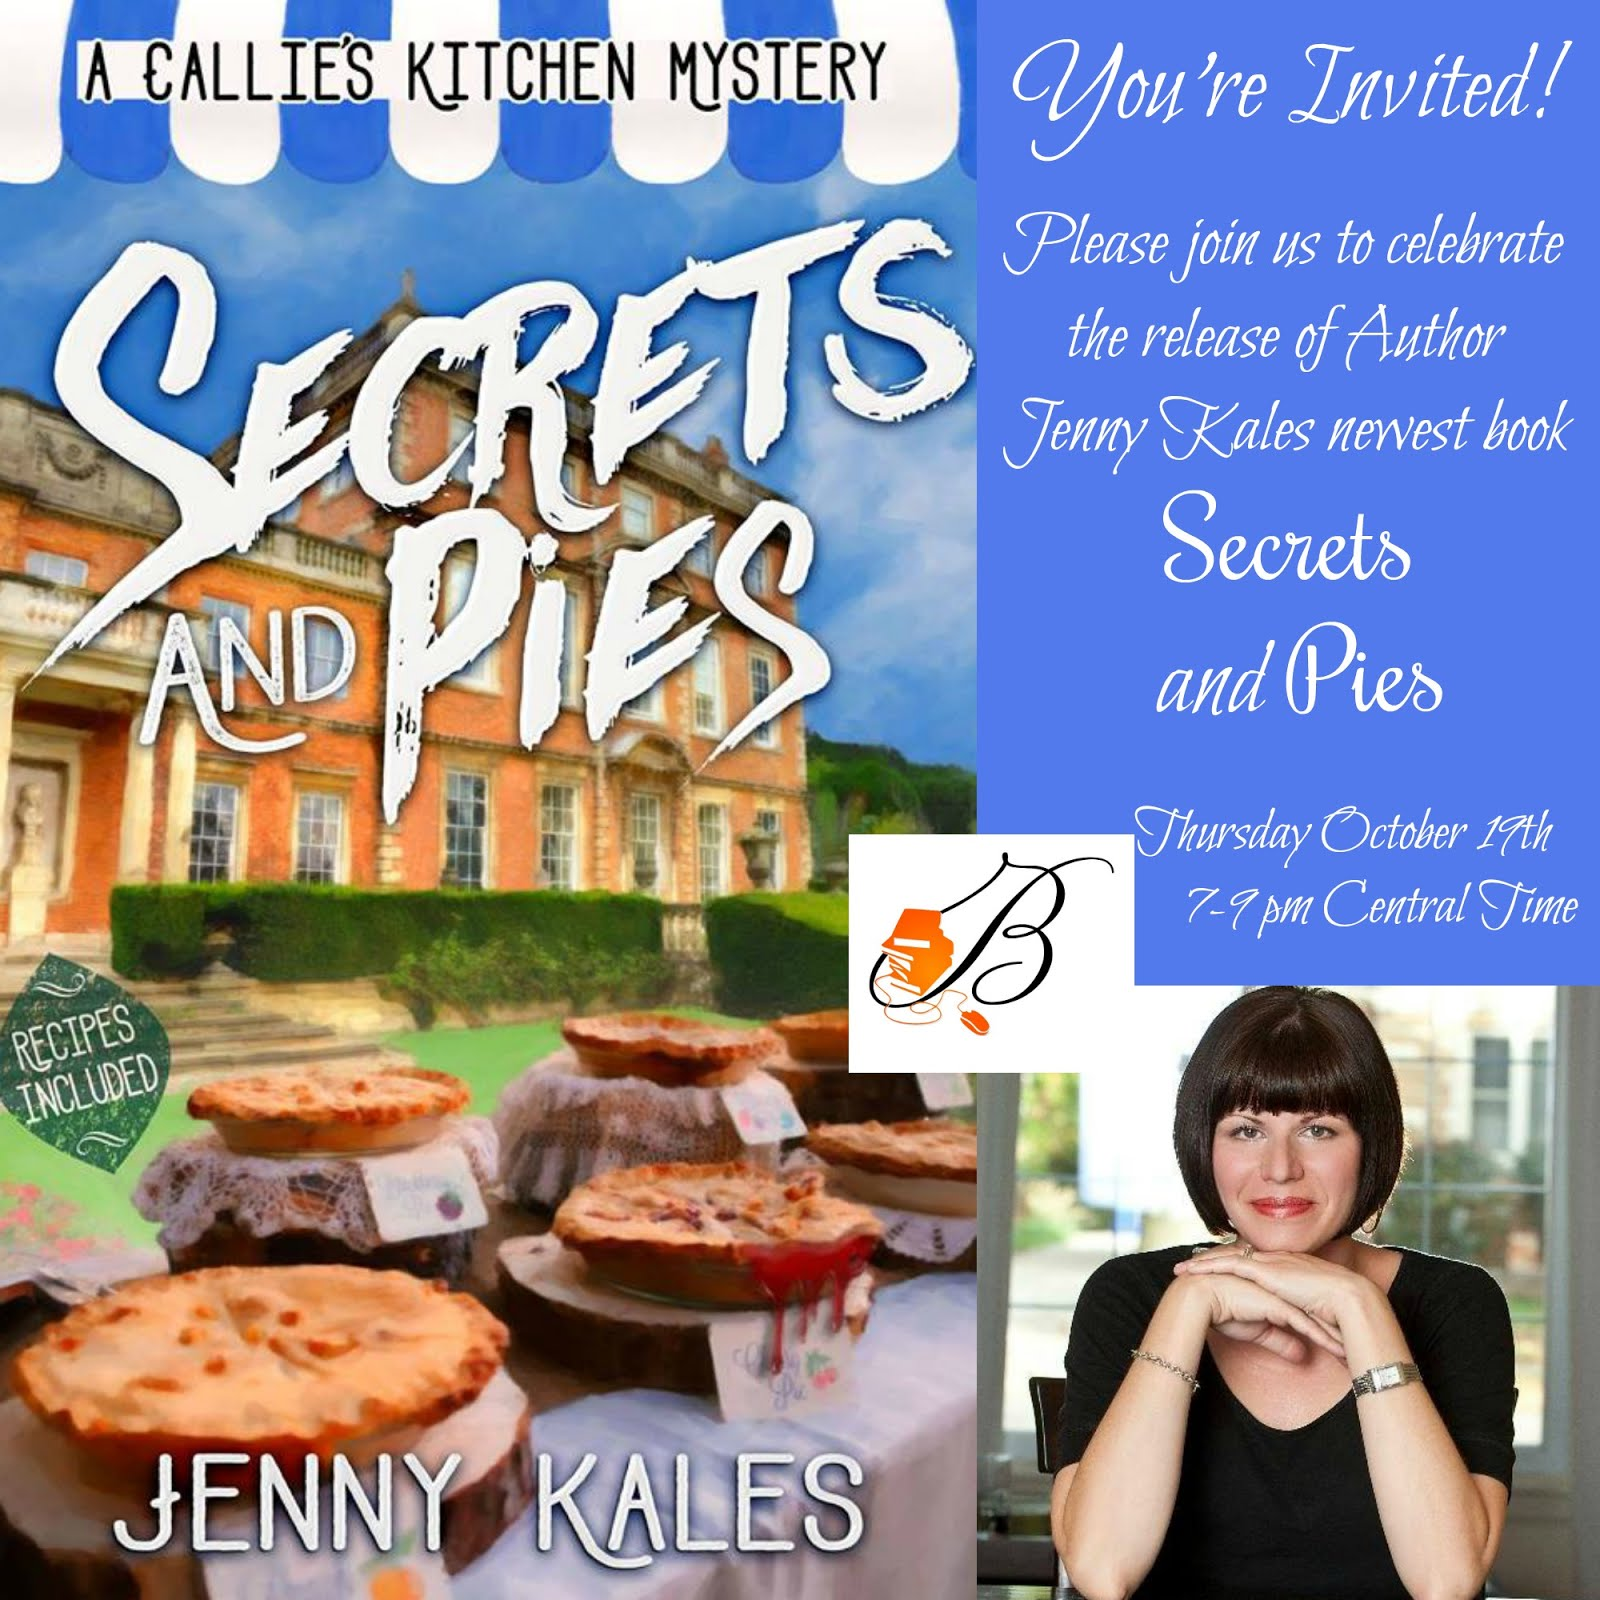 Join us for the Release Party of Jenny Kales Secrets and Pies!